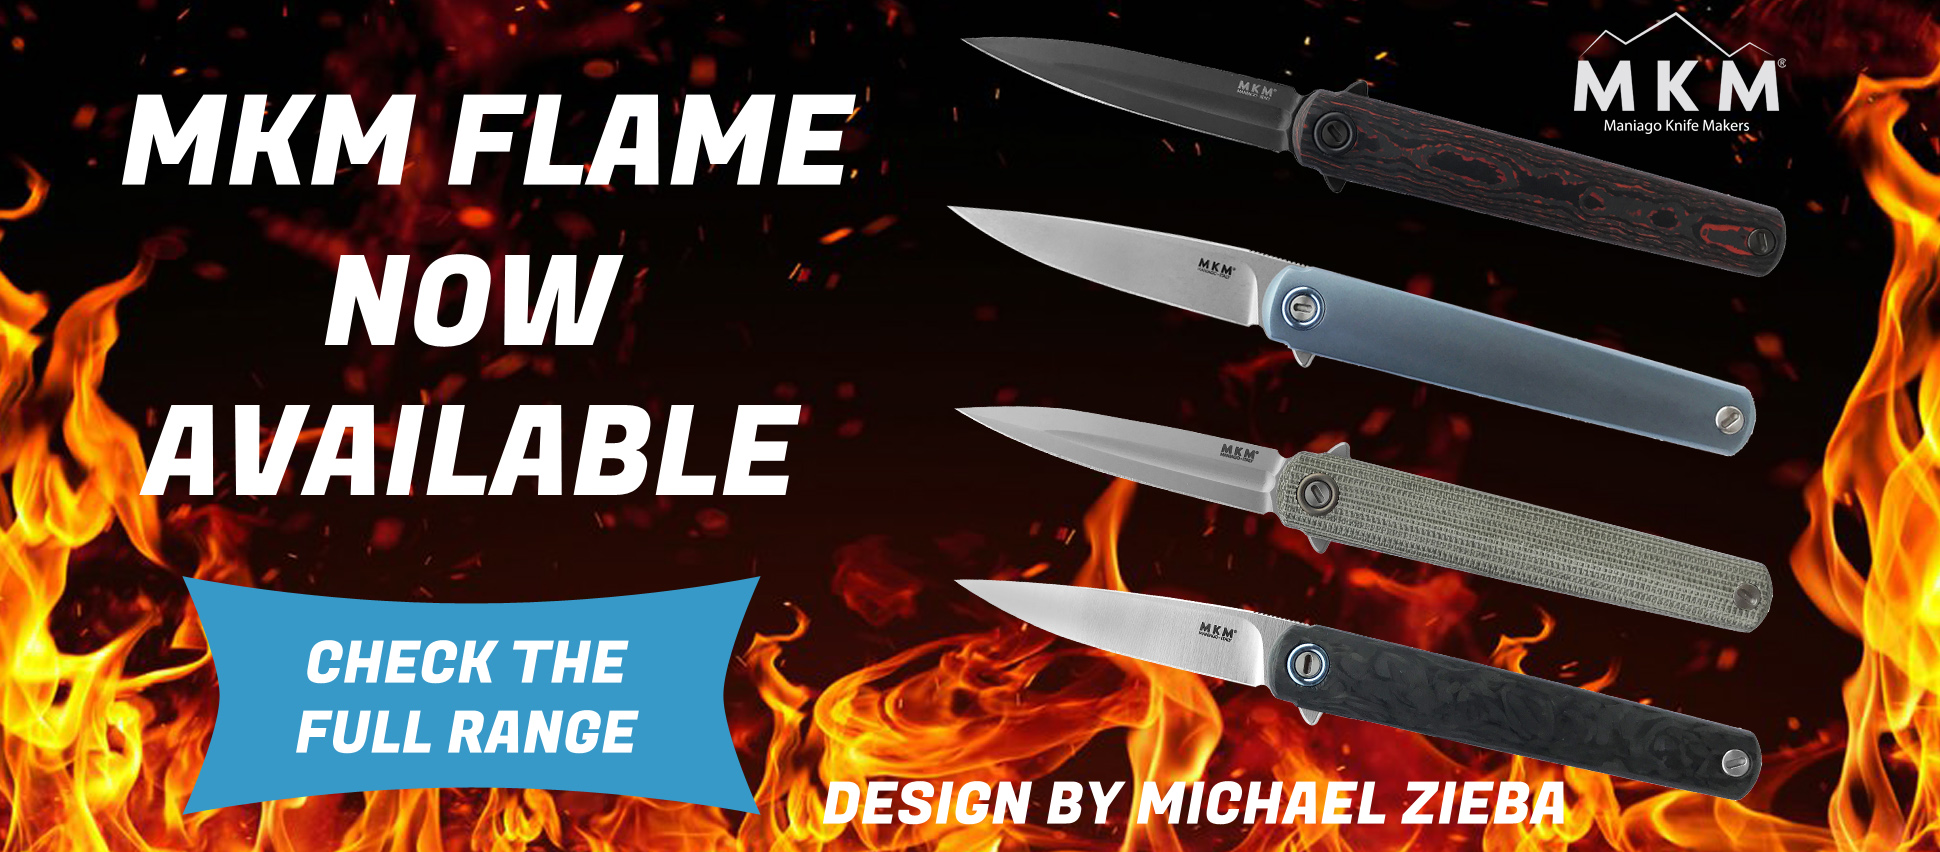 MKM FLAME NOW AVAILABLE